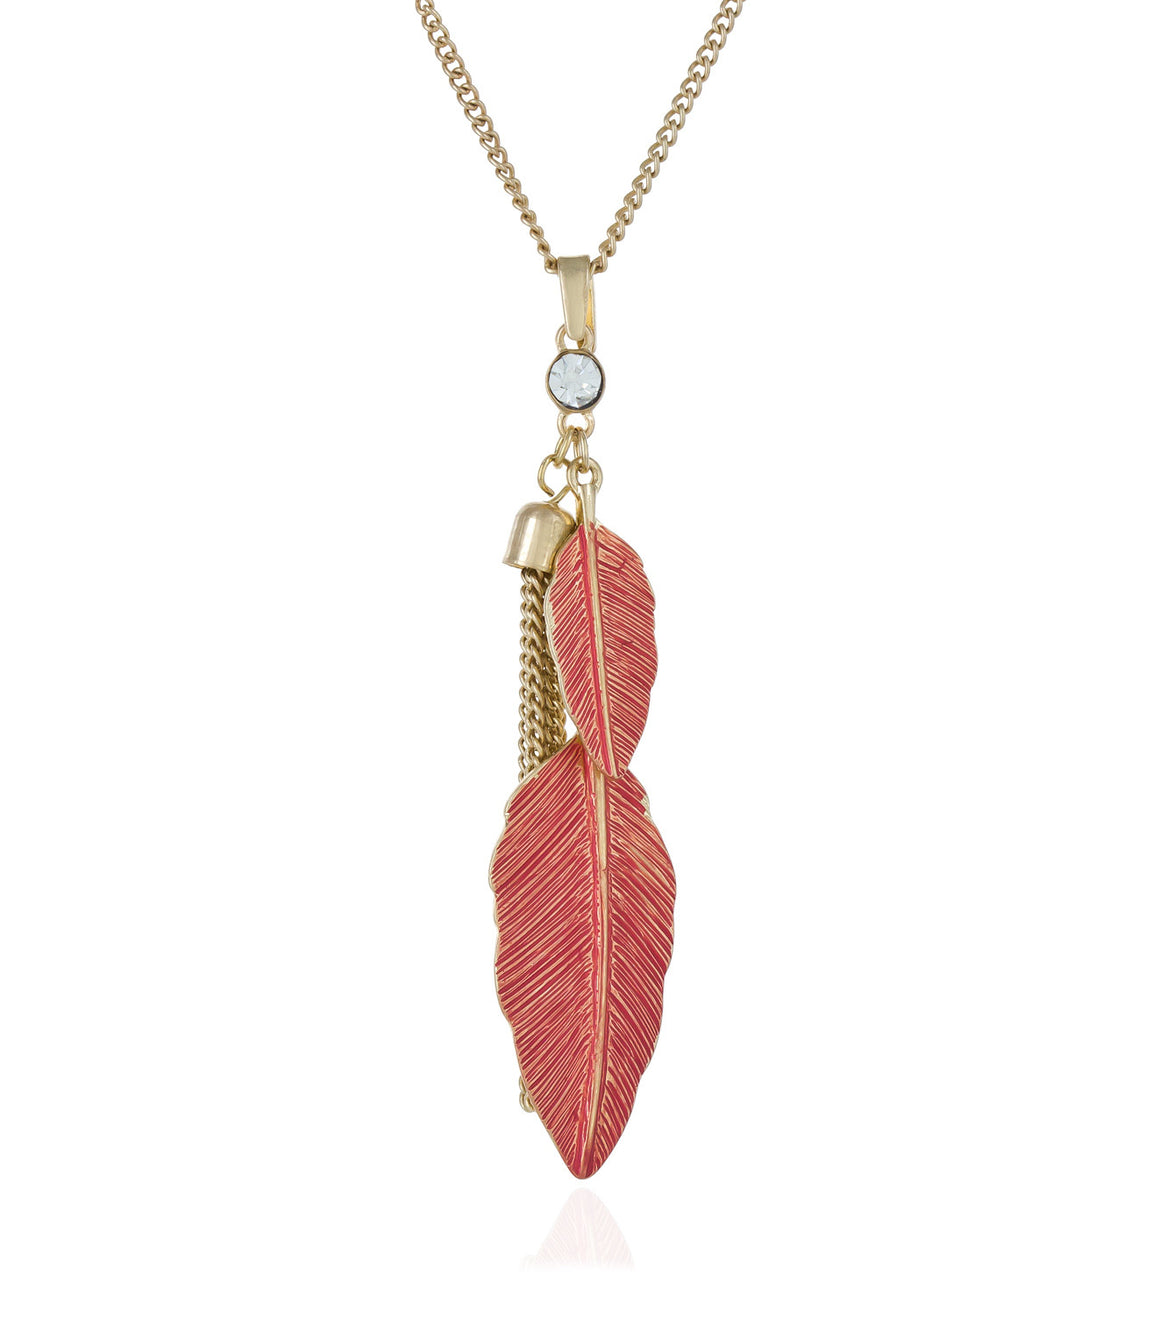 Feather charm and tassel long pendant necklace.